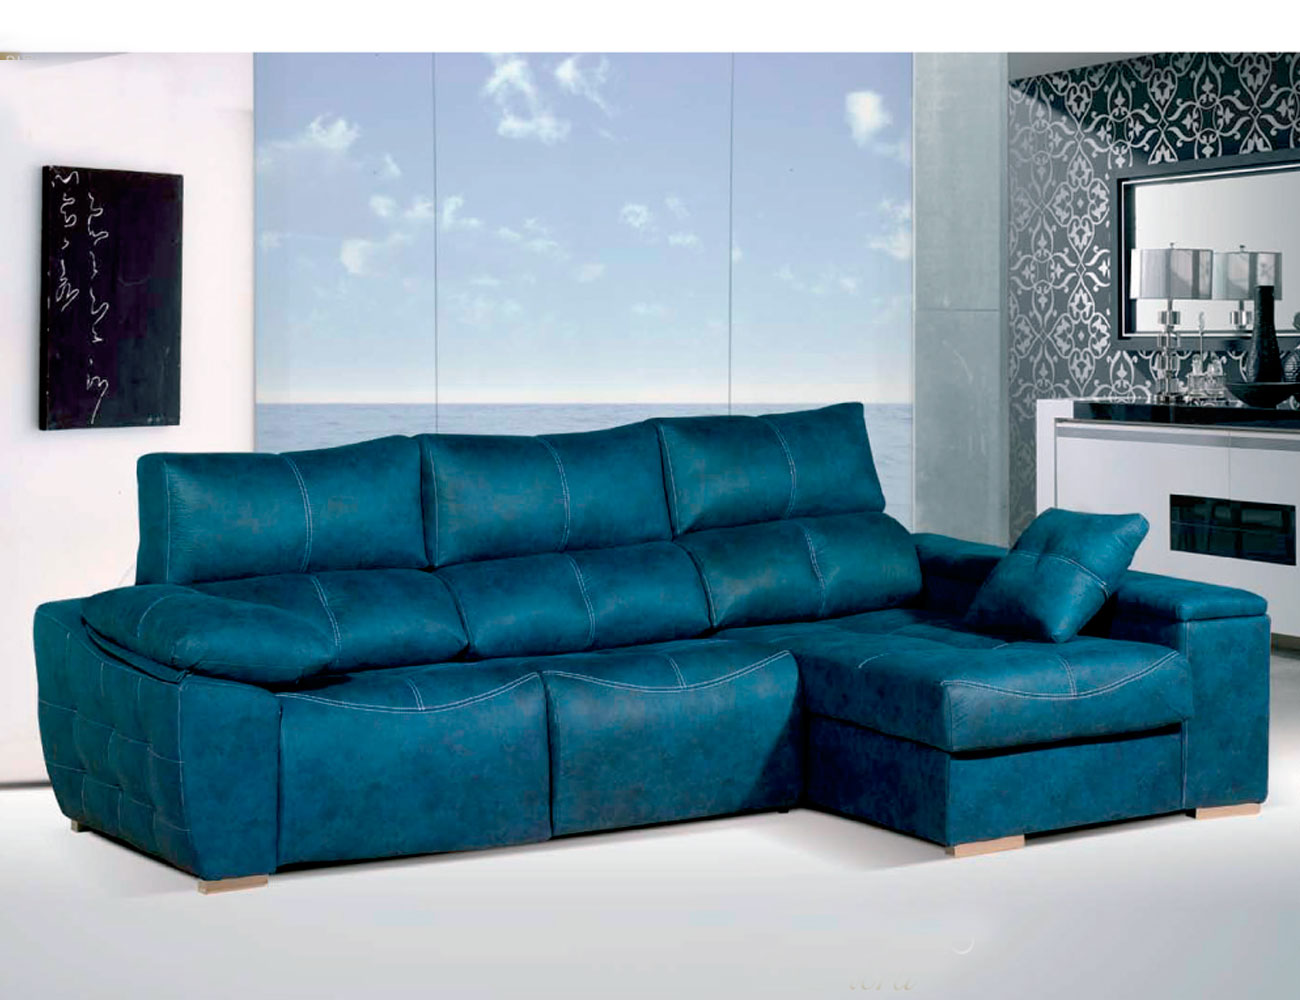 Sofa chaiselongue relax 2 motores anti manchas turquesa12